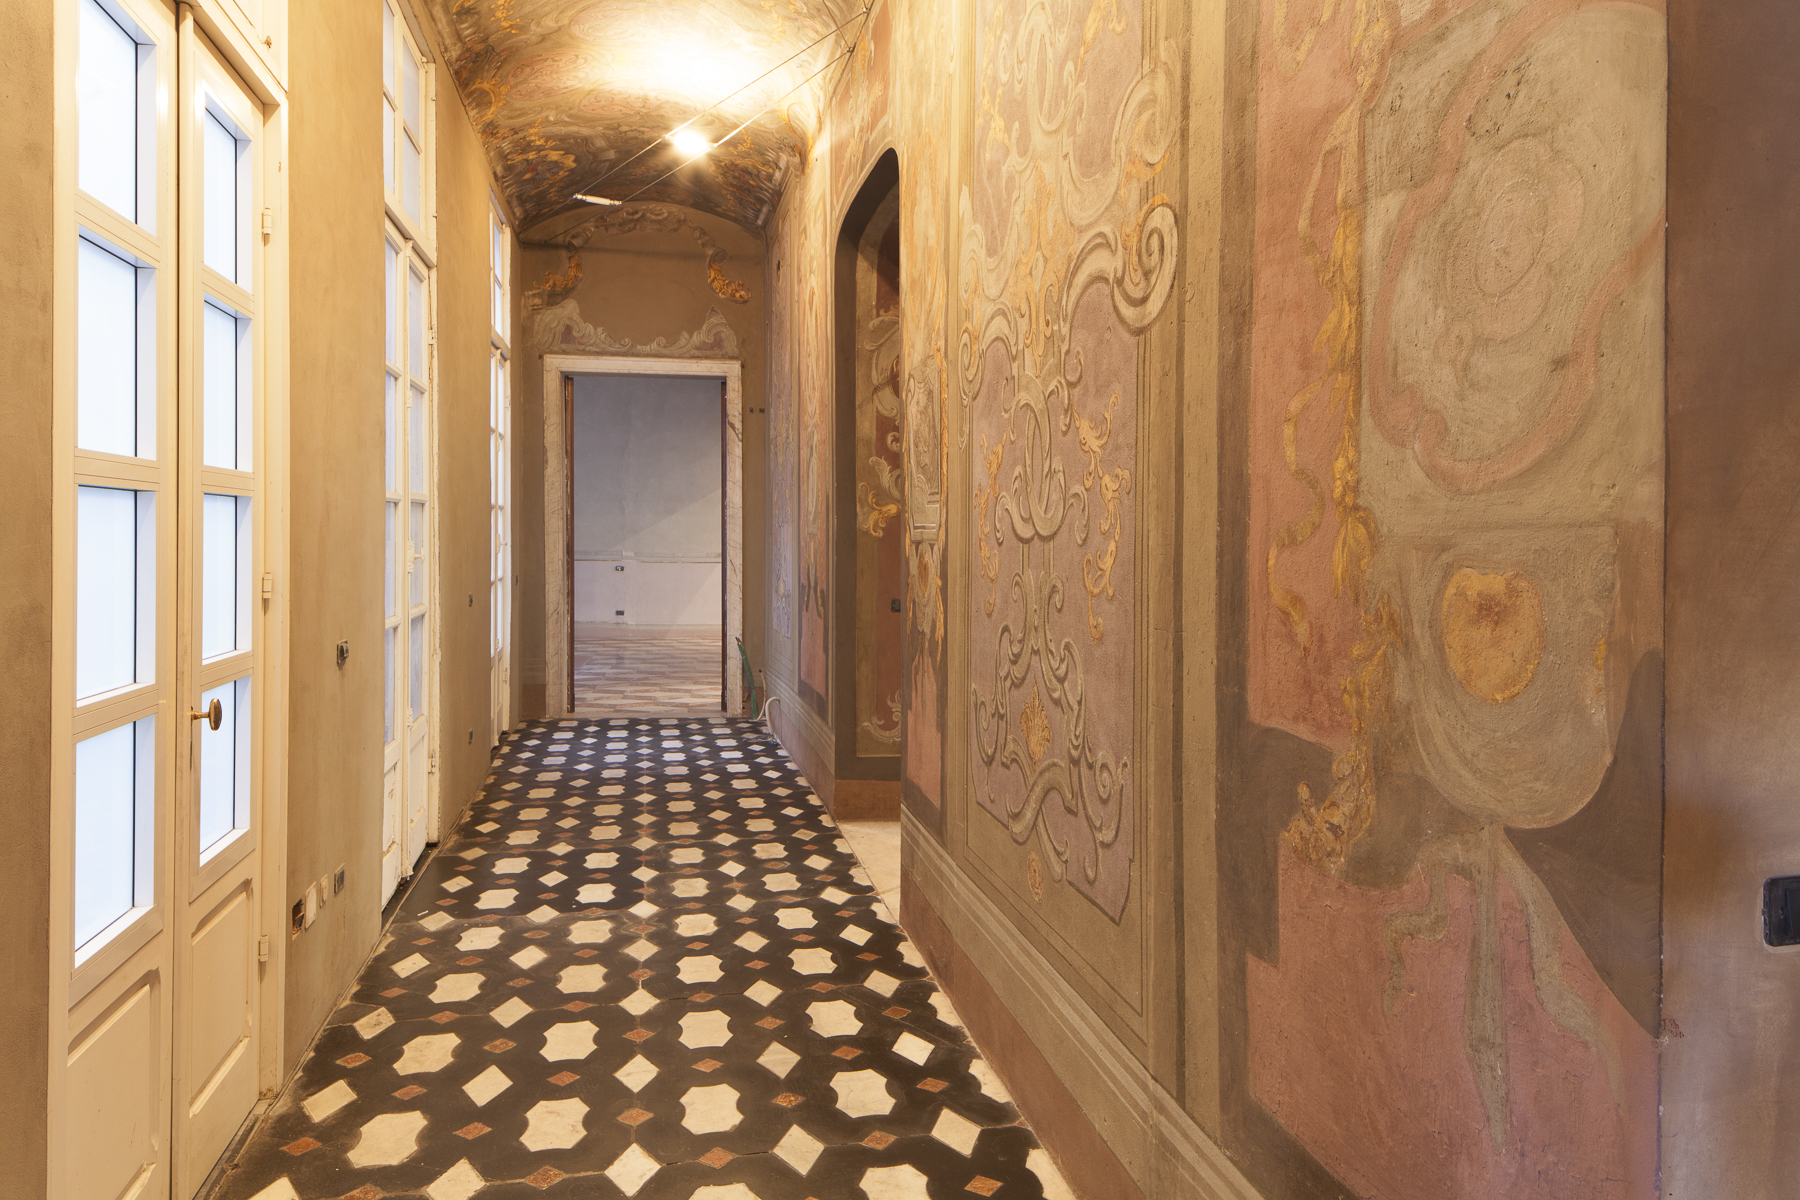 Additional photo for property listing at Highly representative apartment Piazza Ferretto Genoa, Genoa 16123 Italien